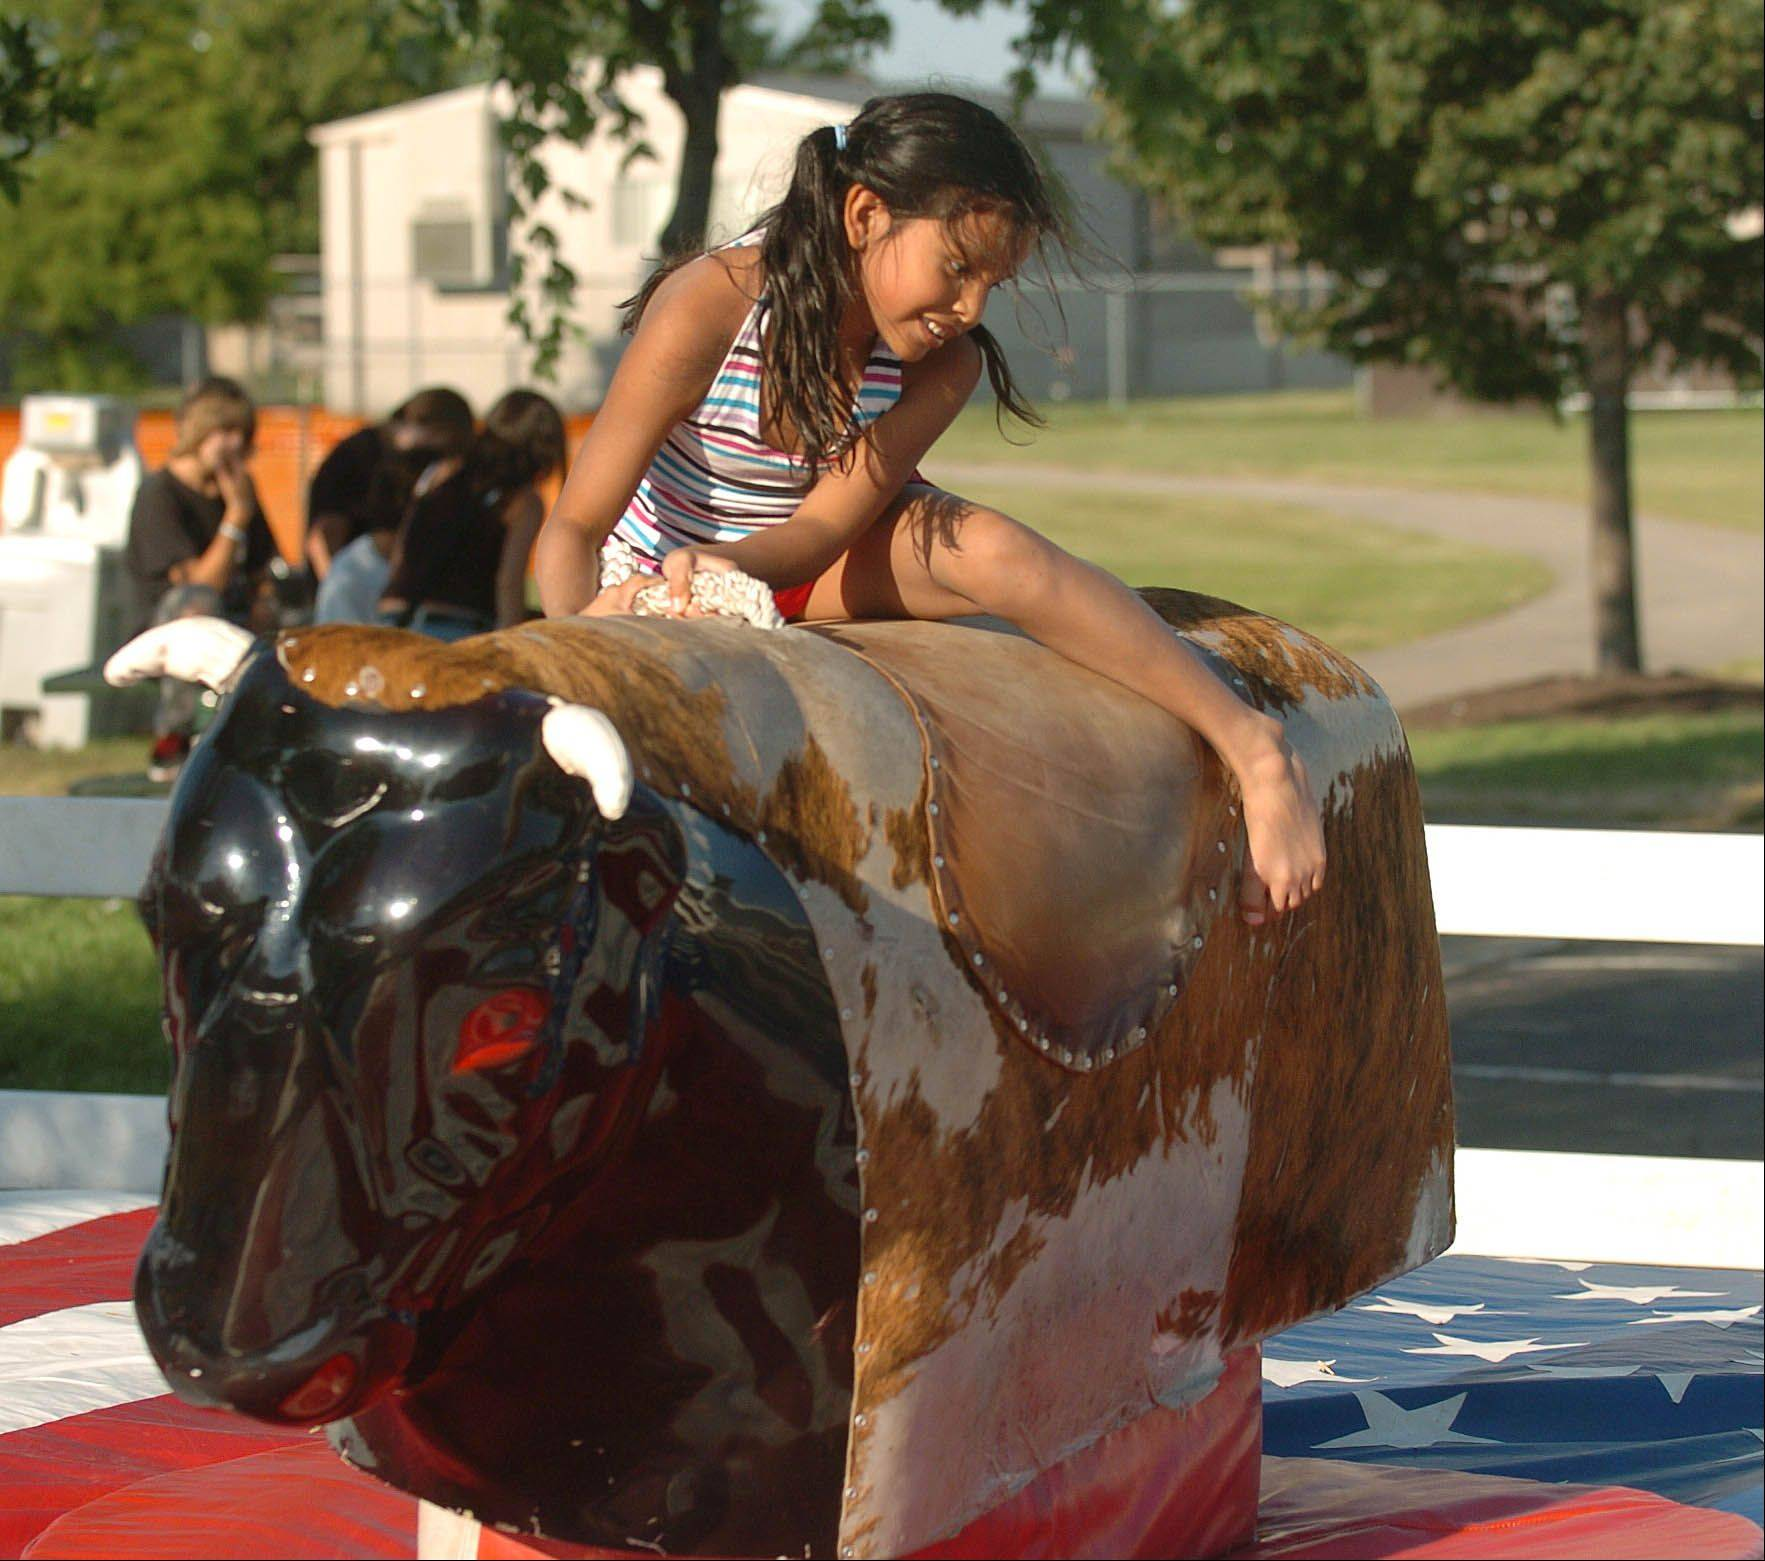 Back by popular demand, the Glendale Heights Fest once again will feature the Ride the Bull event beginning at 8 p.m. on Friday, July 8, run by the Family in Faith Christian Church. All proceeds from the event will be donated to the church's food pantry building fund.